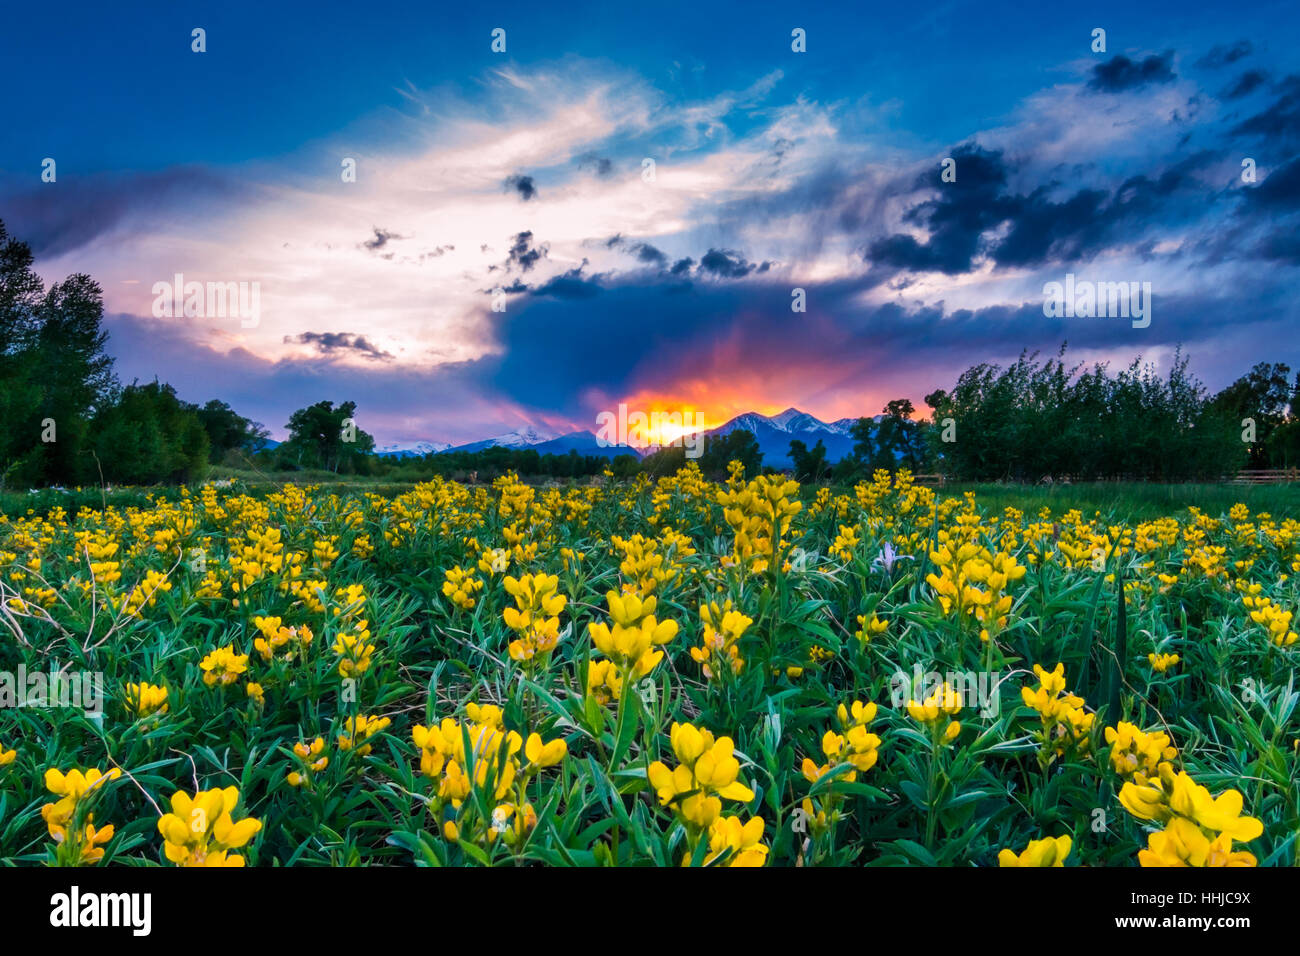 A field of brilliant yellow flowers in front of a spectacular sunset in the Rocky Mountains of Colorado Stock Photo